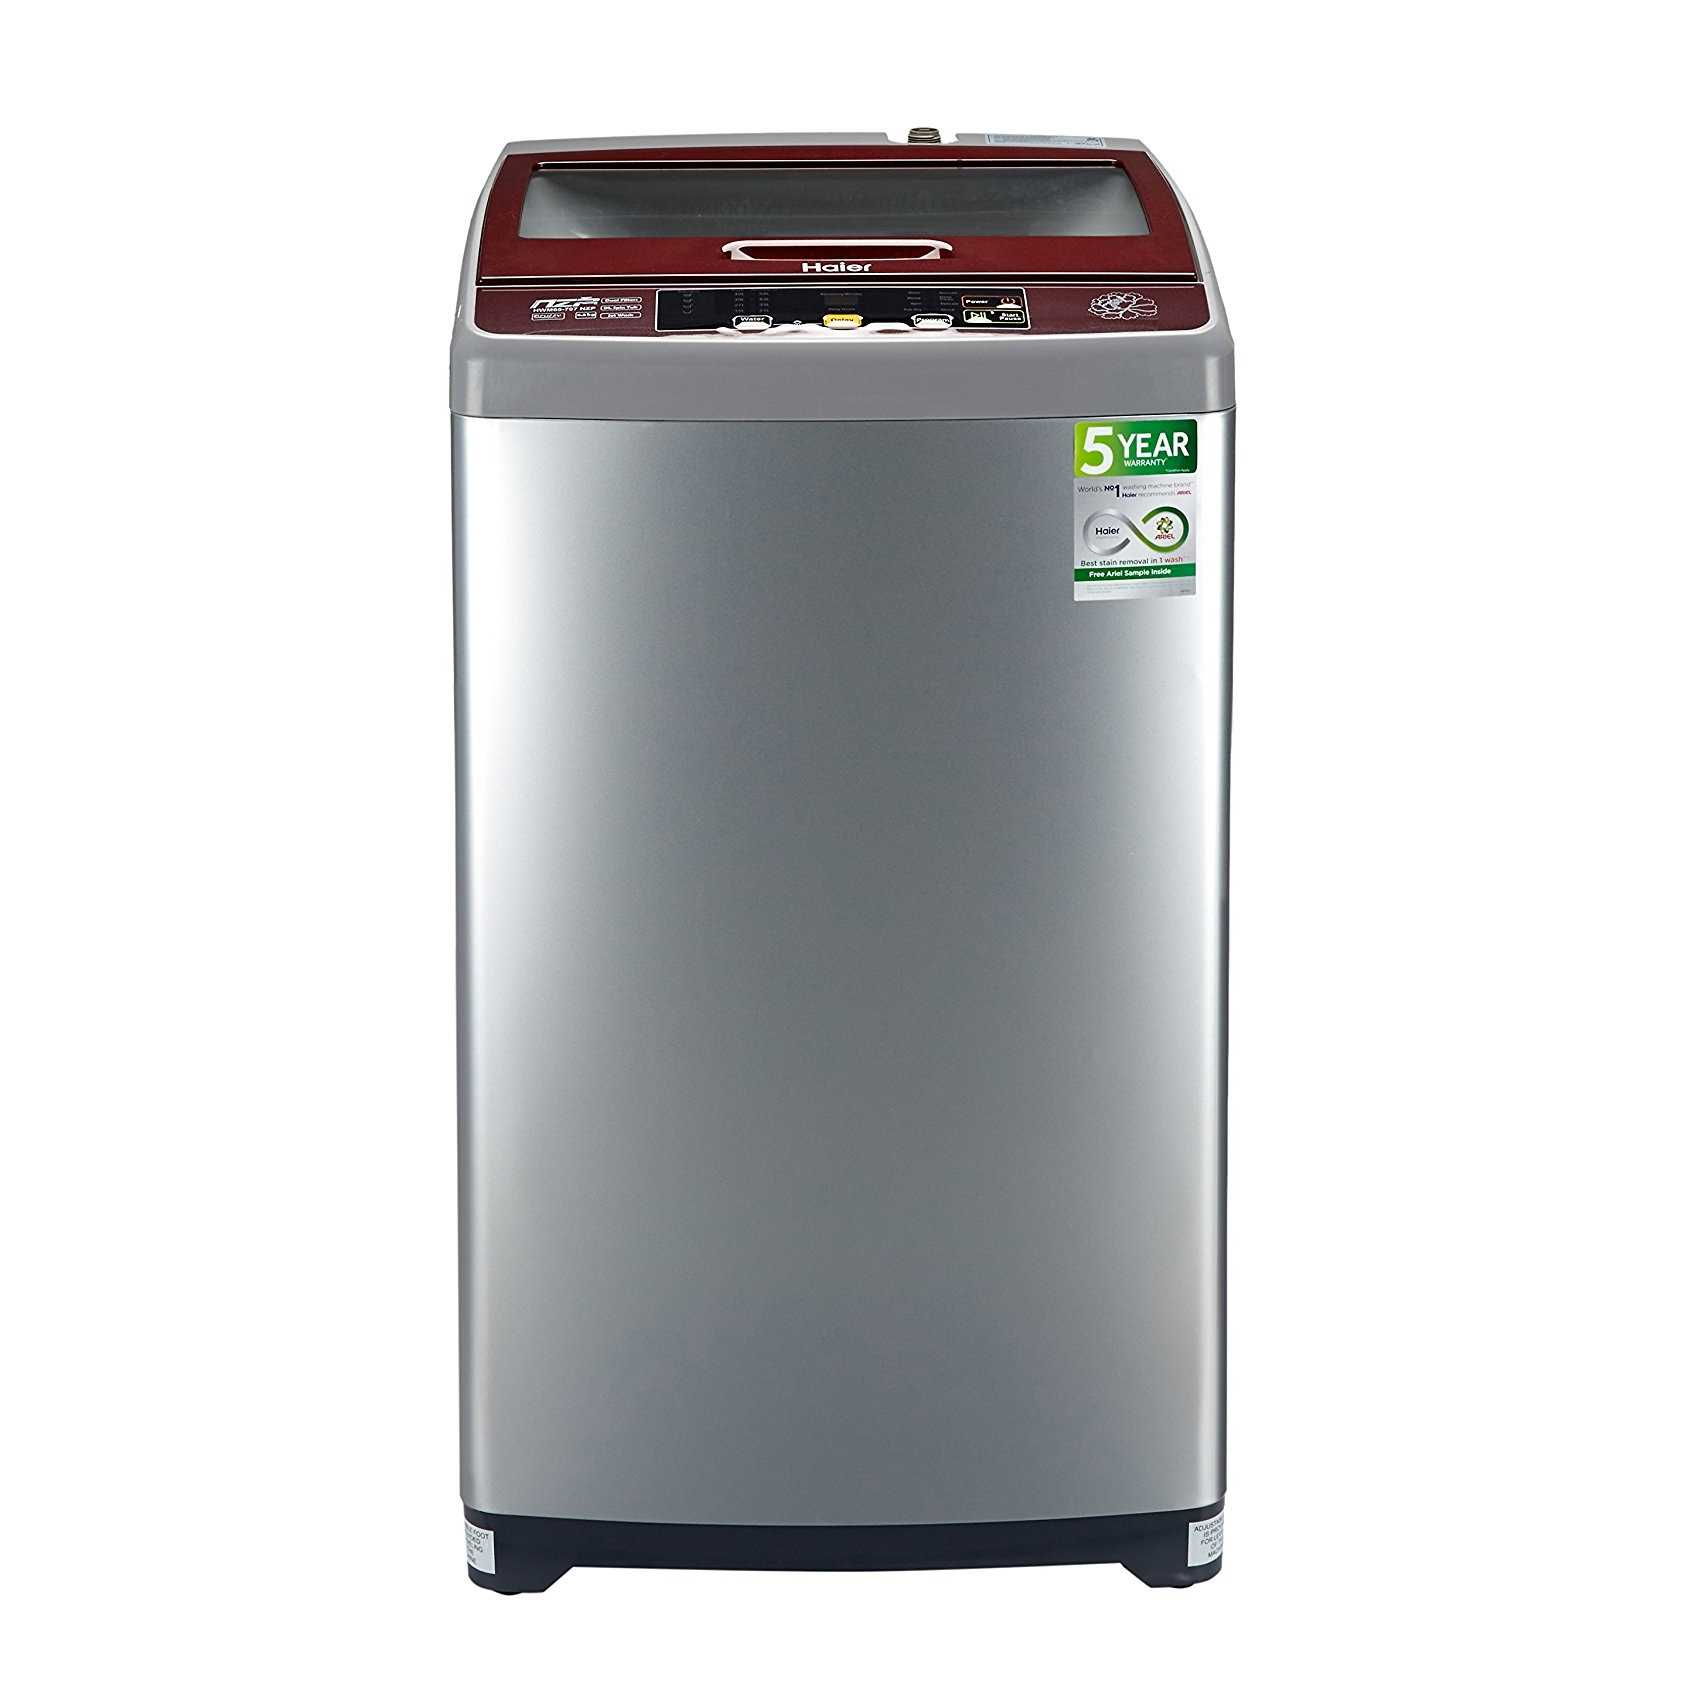 Haier HWM65-707NZP 6.5 Kg Fully Automatic Top Loading Washing Machine